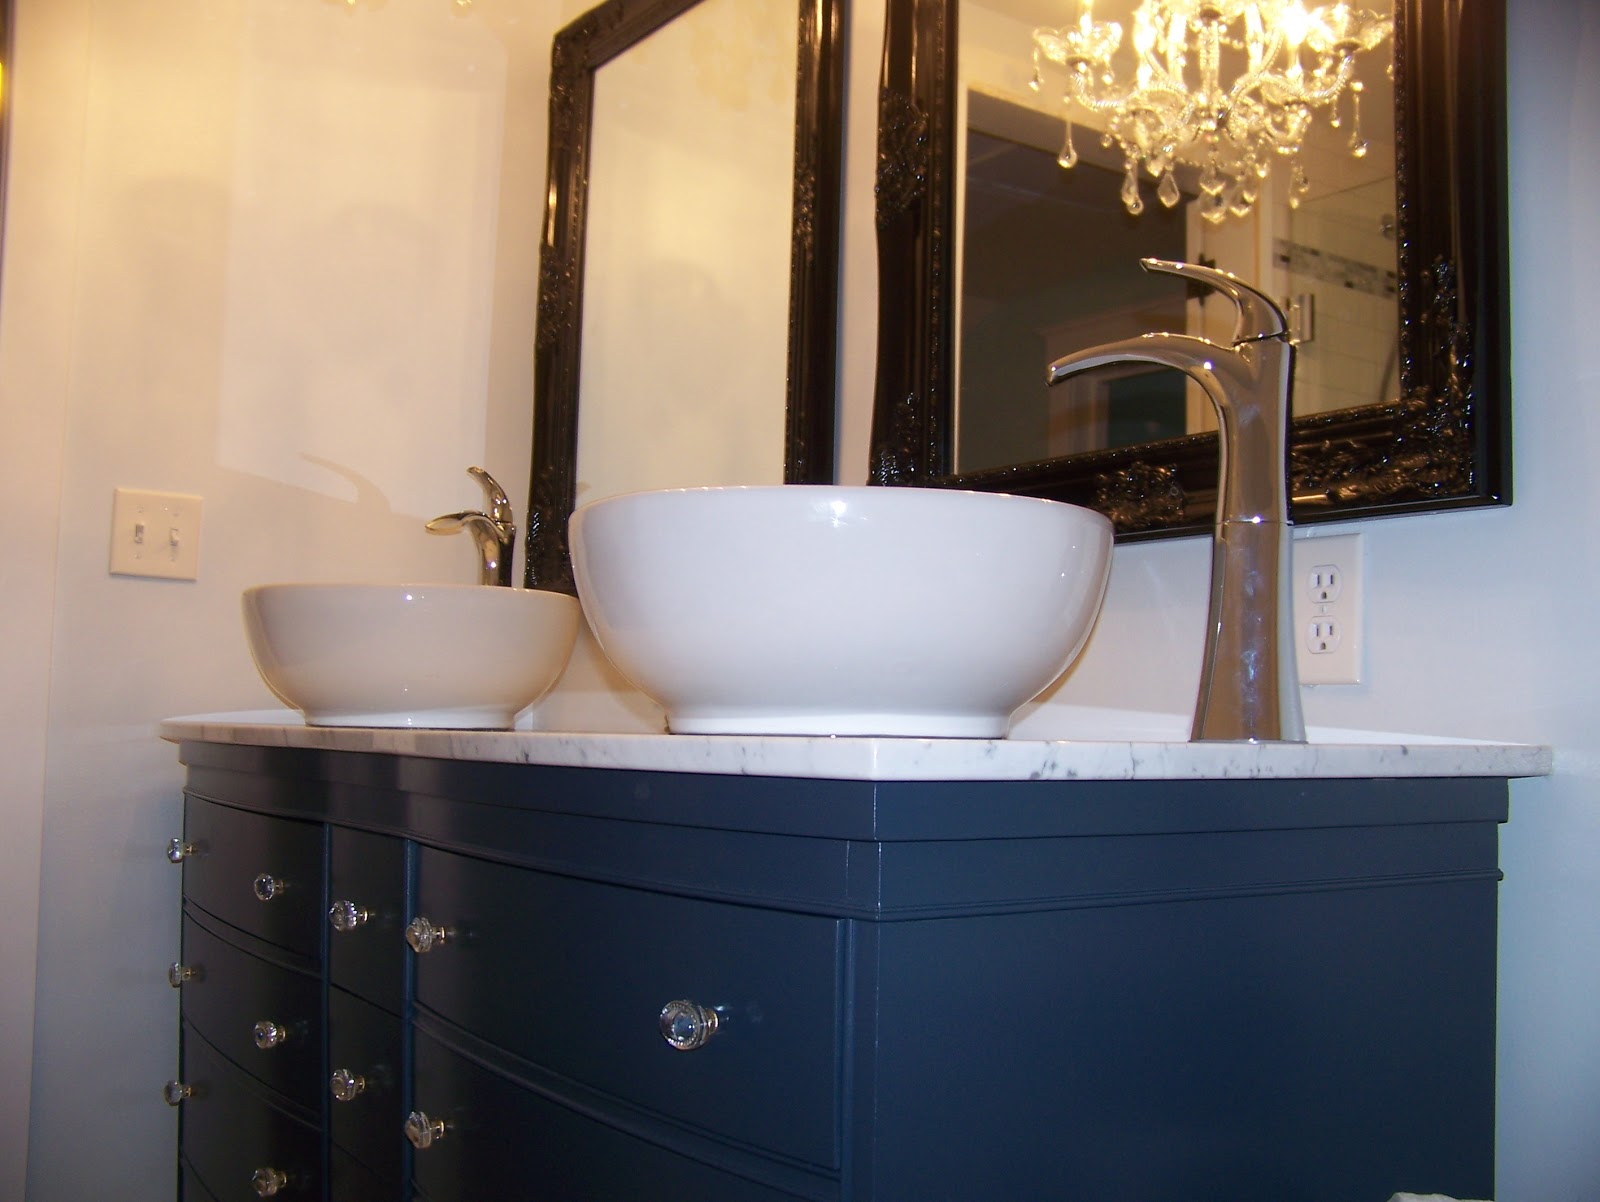 Julie peterson simple redesign turning a dresser into a for Turning a dresser into a bathroom vanity